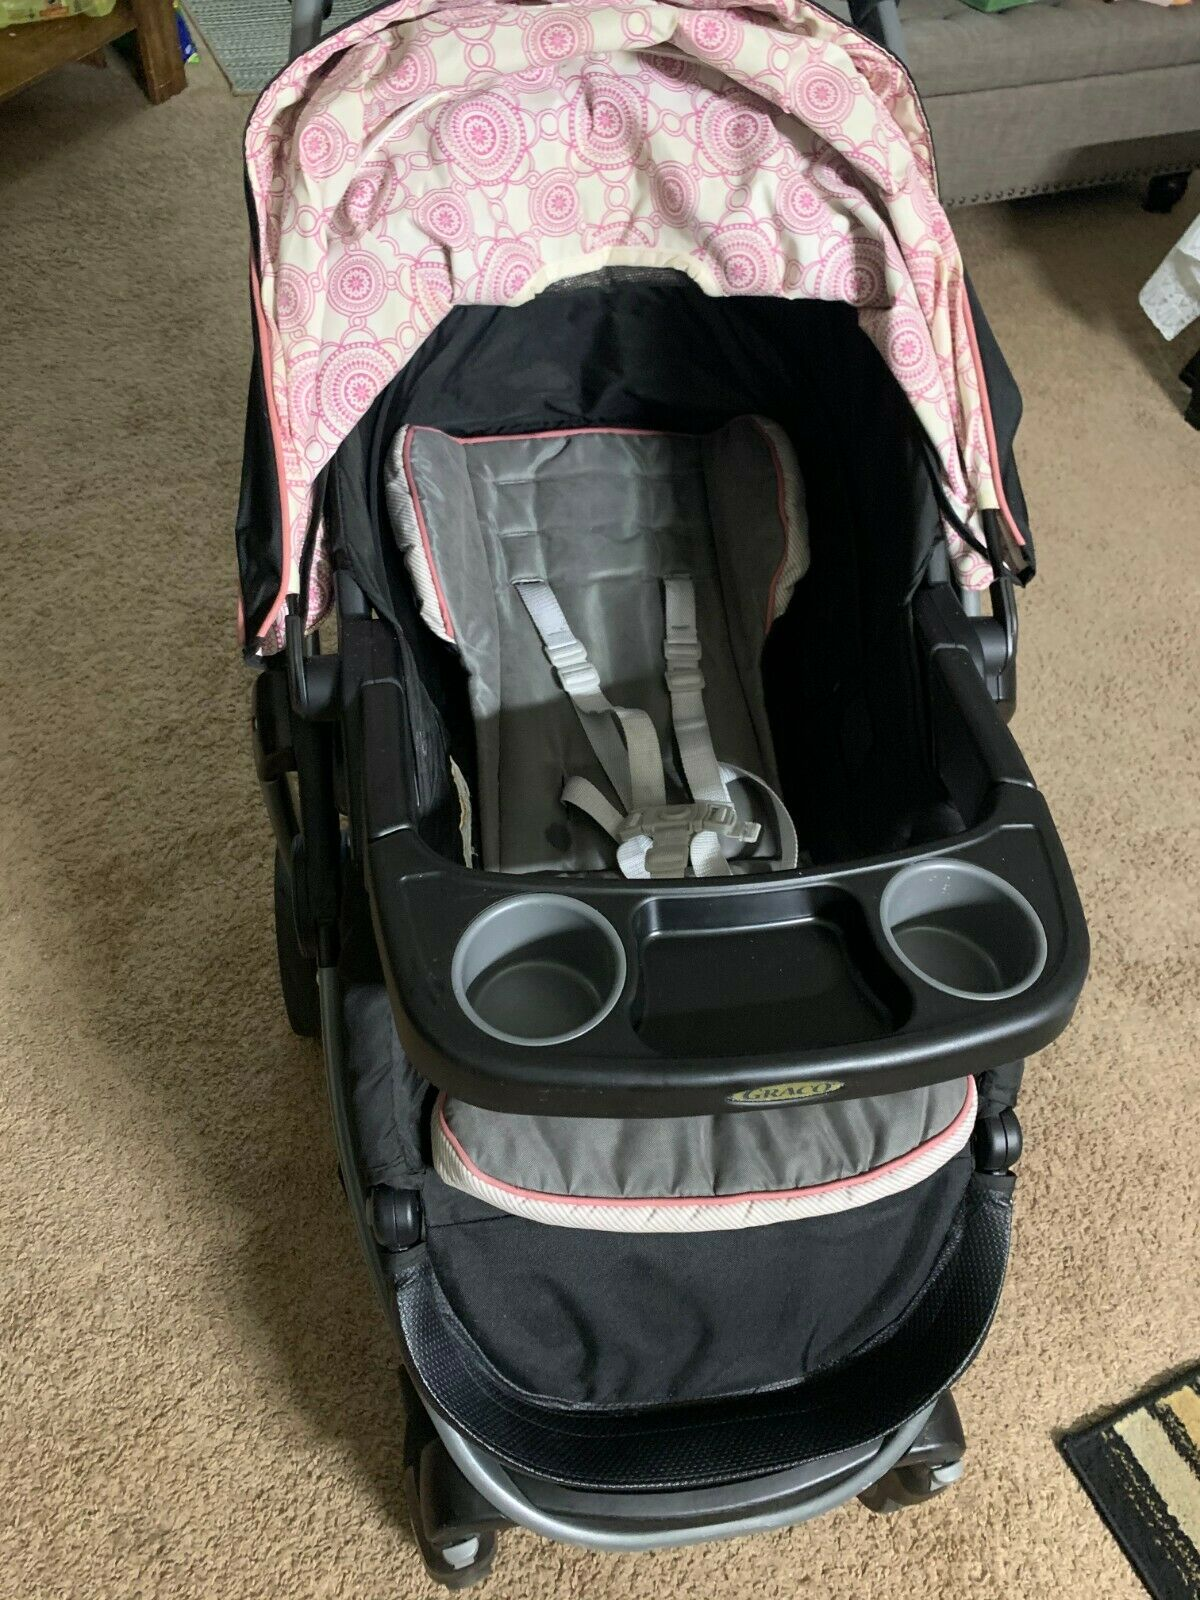 Stroller Travel System Ebay Graco Modes Click Connect Davis Travel System Stroller Car Seat Pink Gray